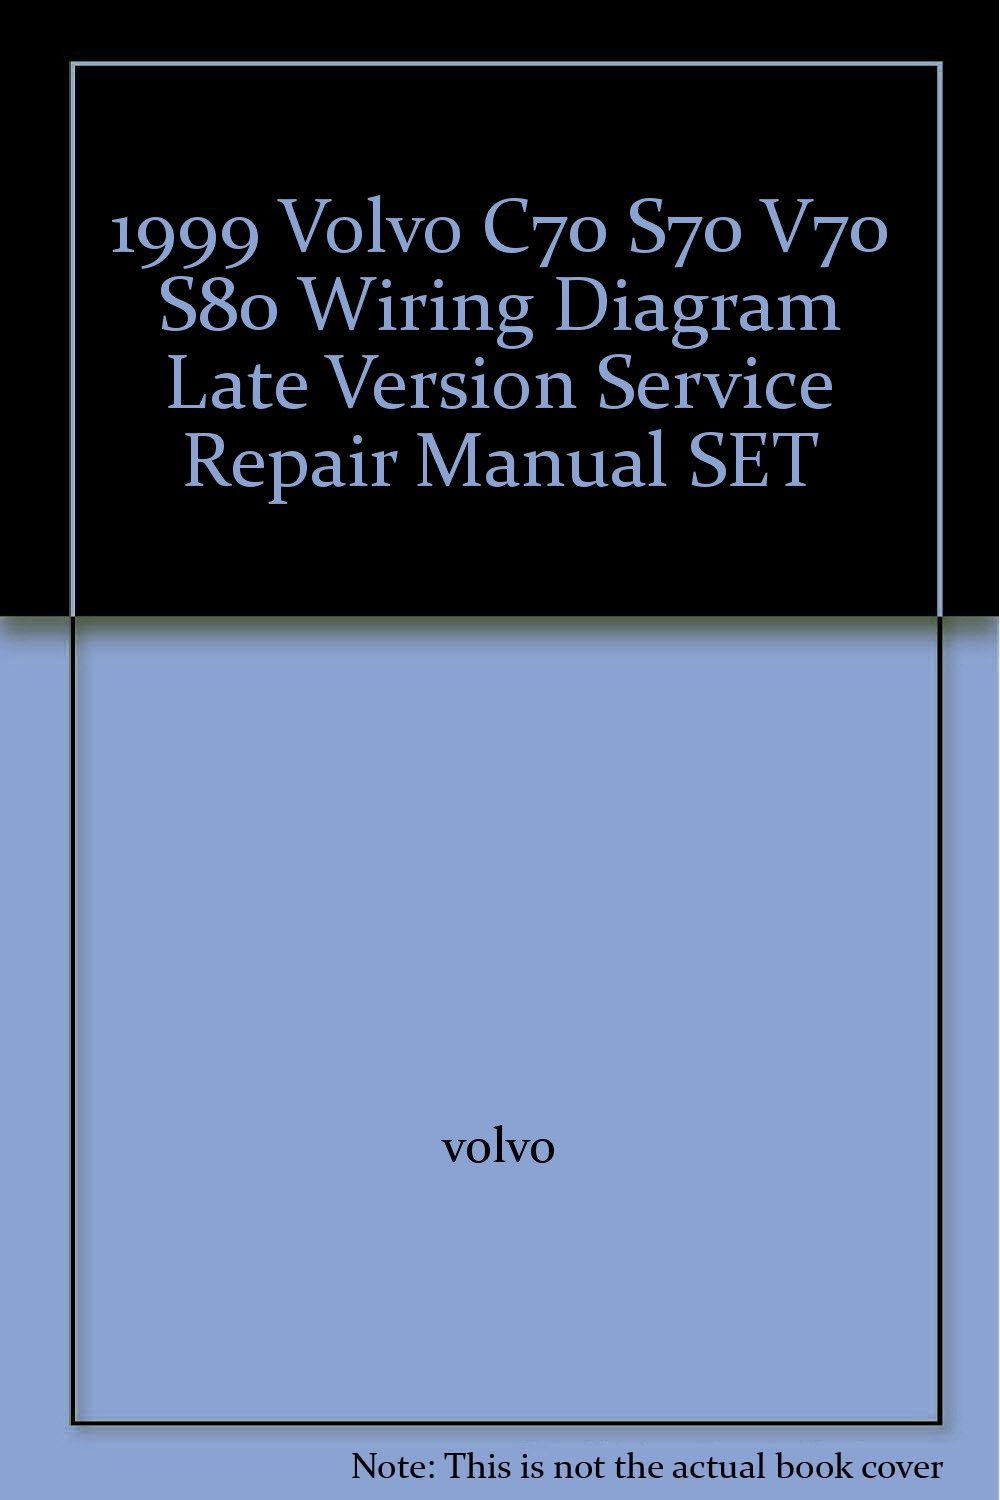 1999 volvo c70 s70 v70 s80 wiring diagram late version service rh amazon com 1999 volvo s80 repair manual pdf 1999 volvo s80 repair manual pdf